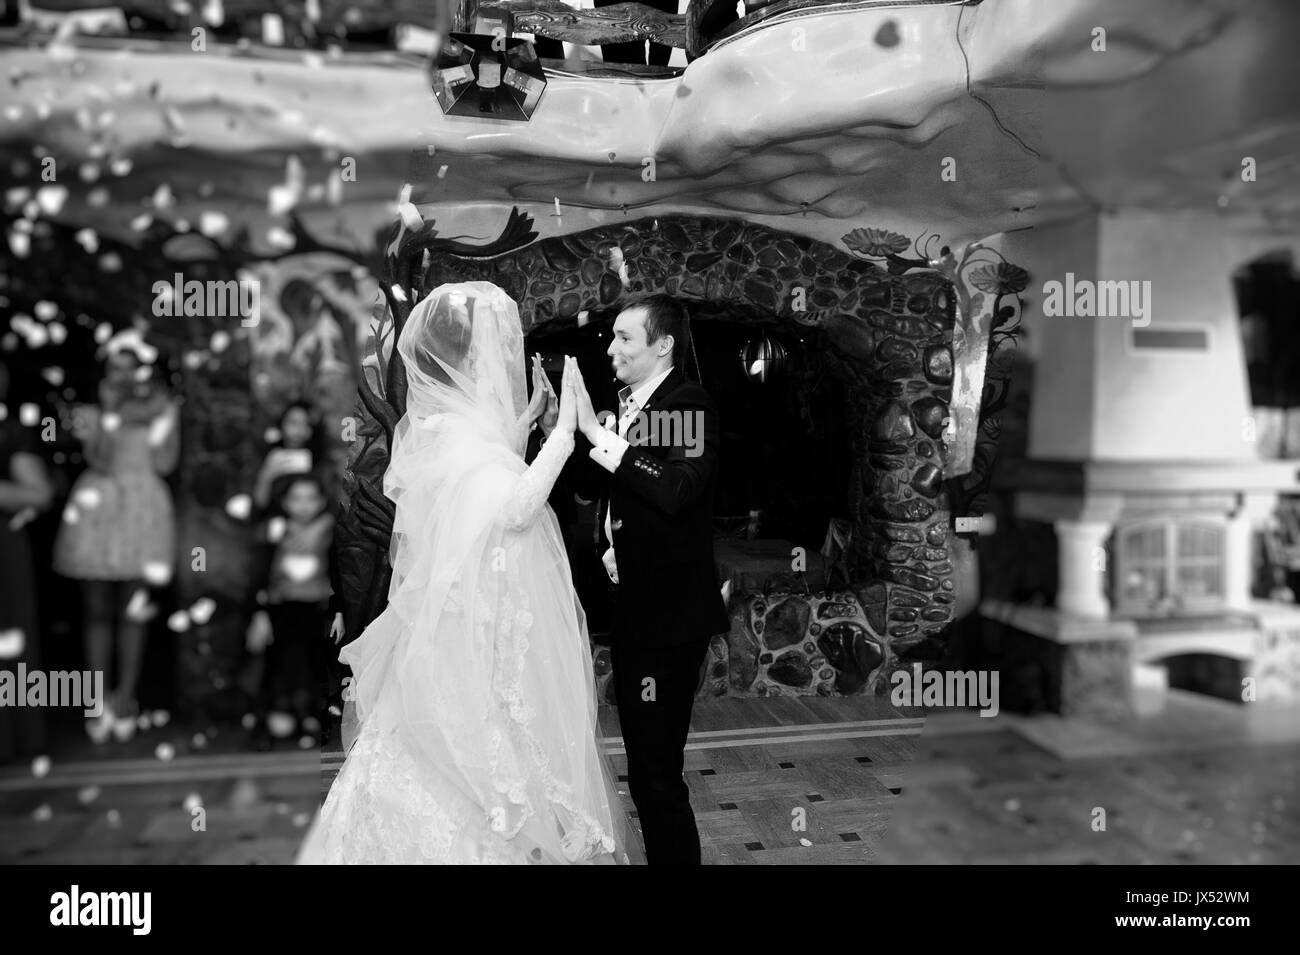 Wedding Couple Dancing Their First Dance In The Restaurant With Confetti On Floor Black And White Photo